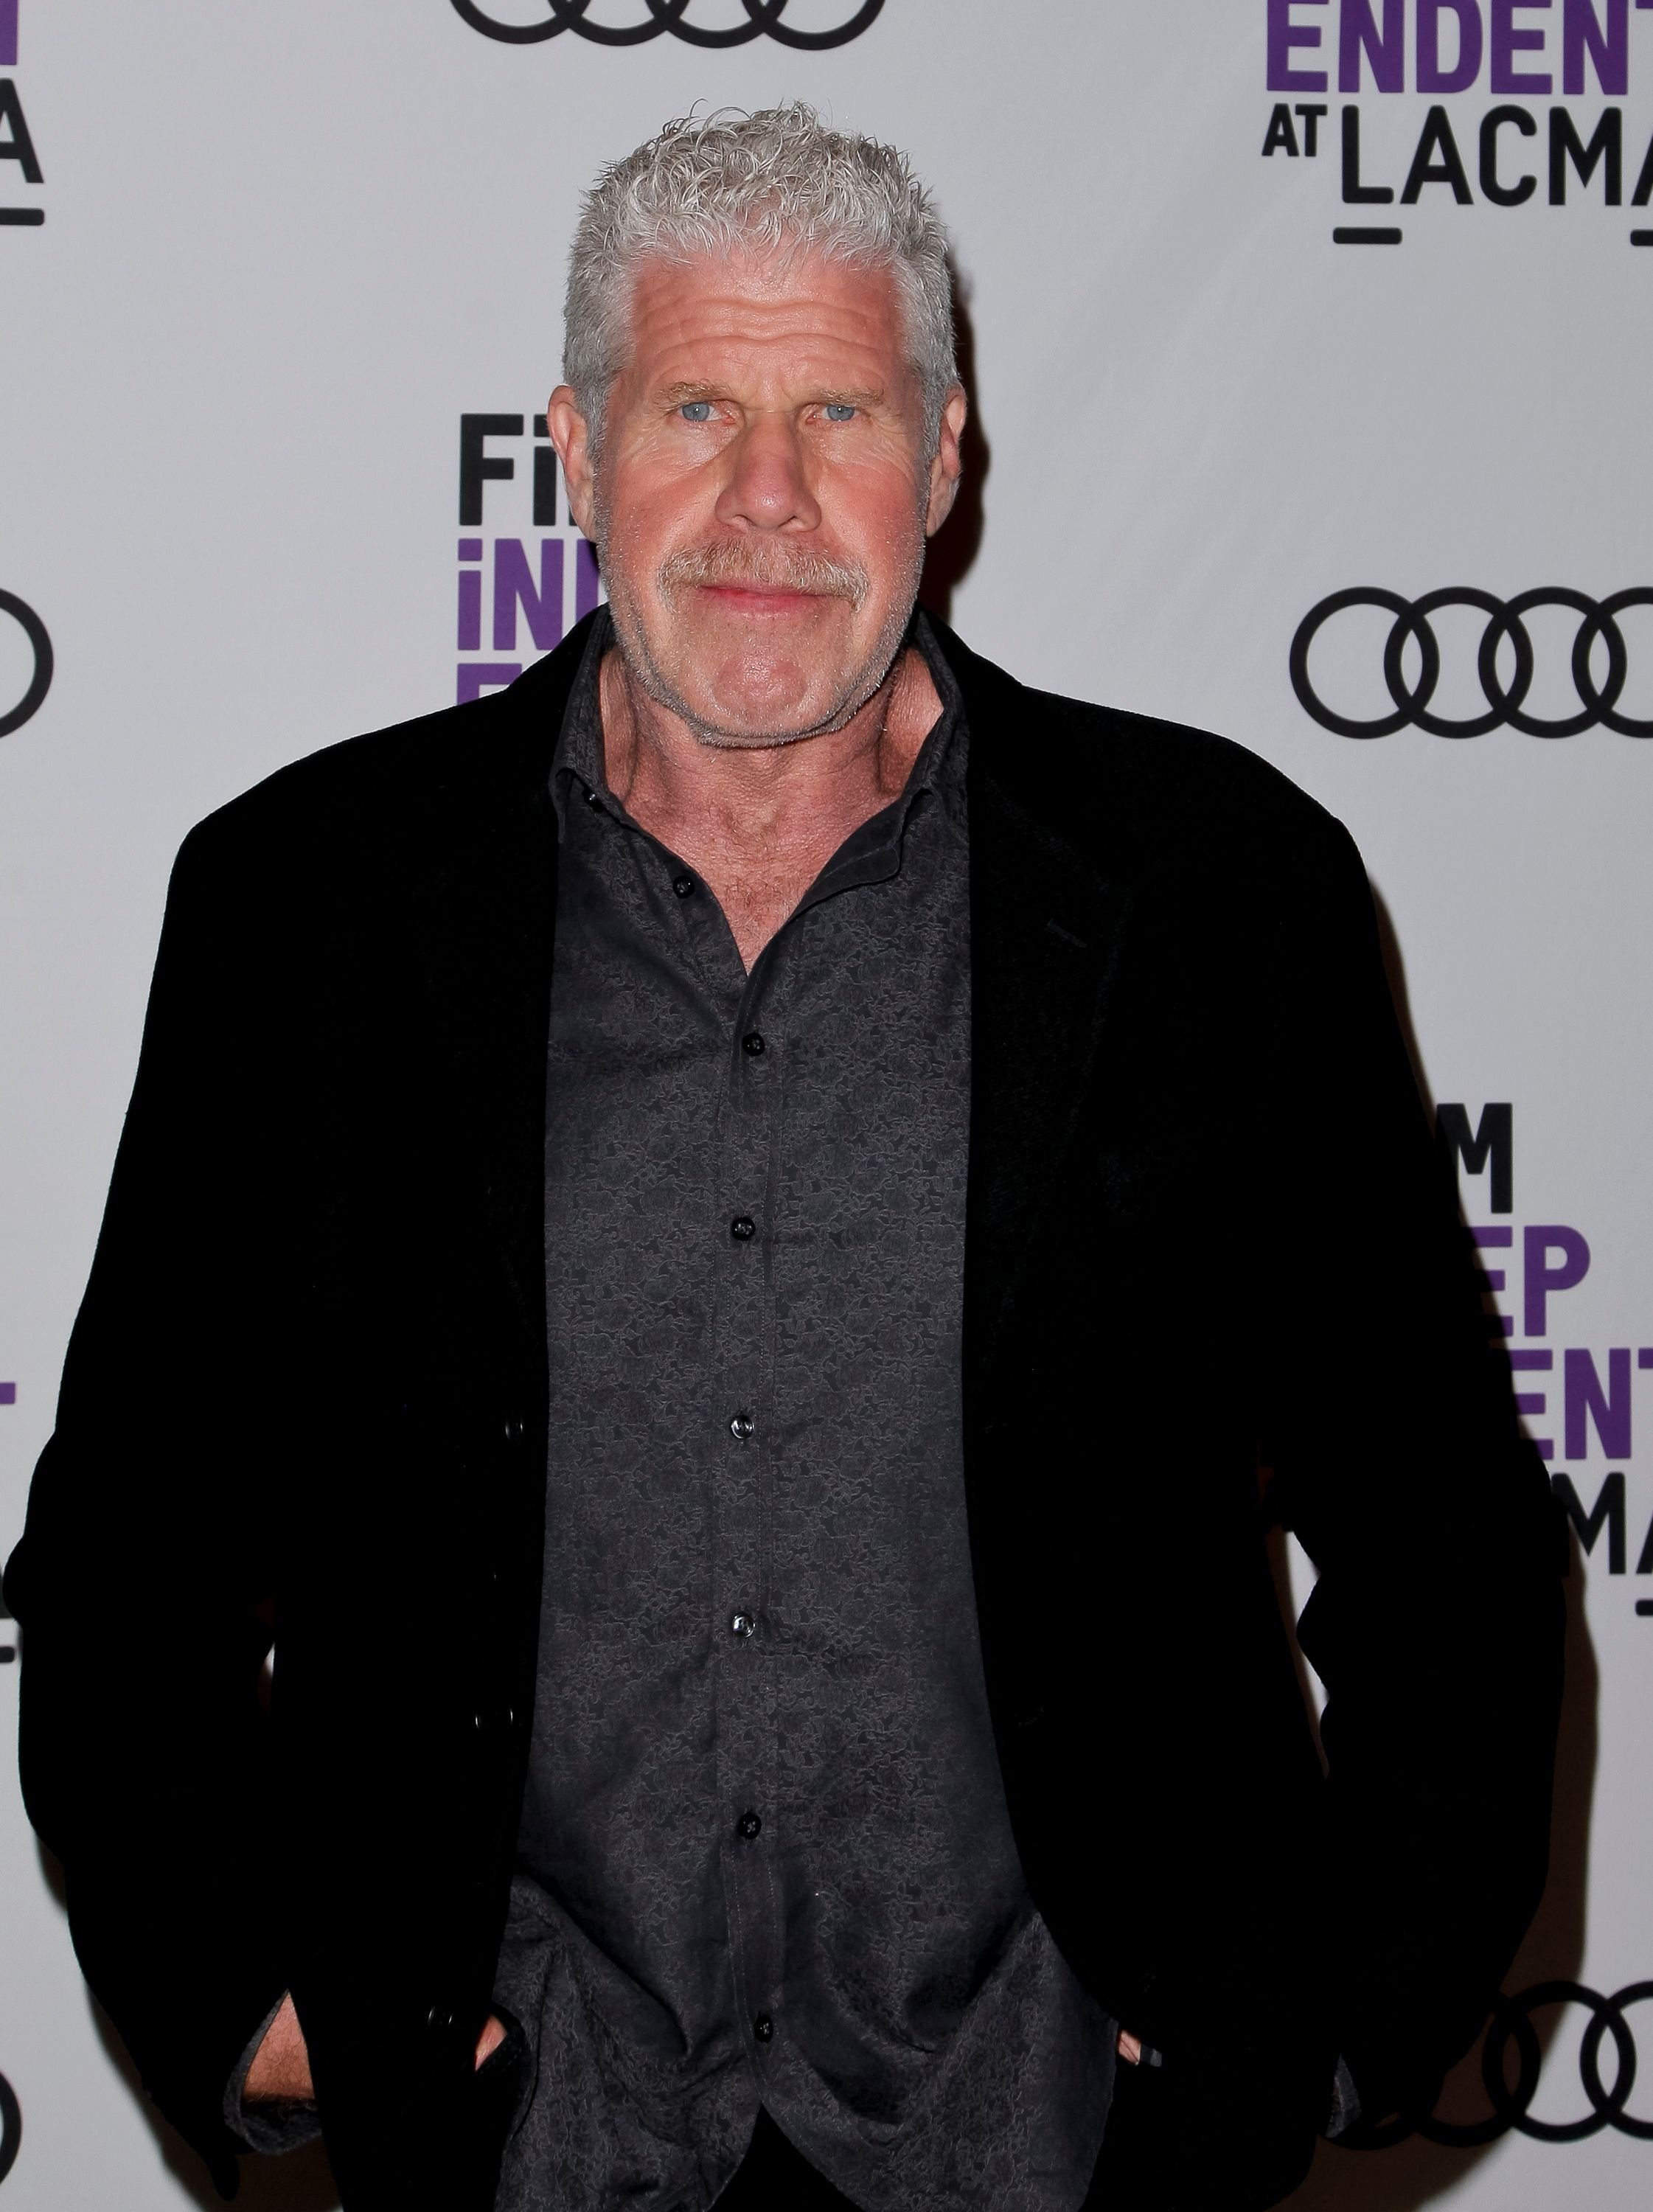 Ron Perlman attends the screening of 'StartUp' at Bing Theater At LACMA on September 28, 2017 in Los Angeles, California. | Source: Getty Images